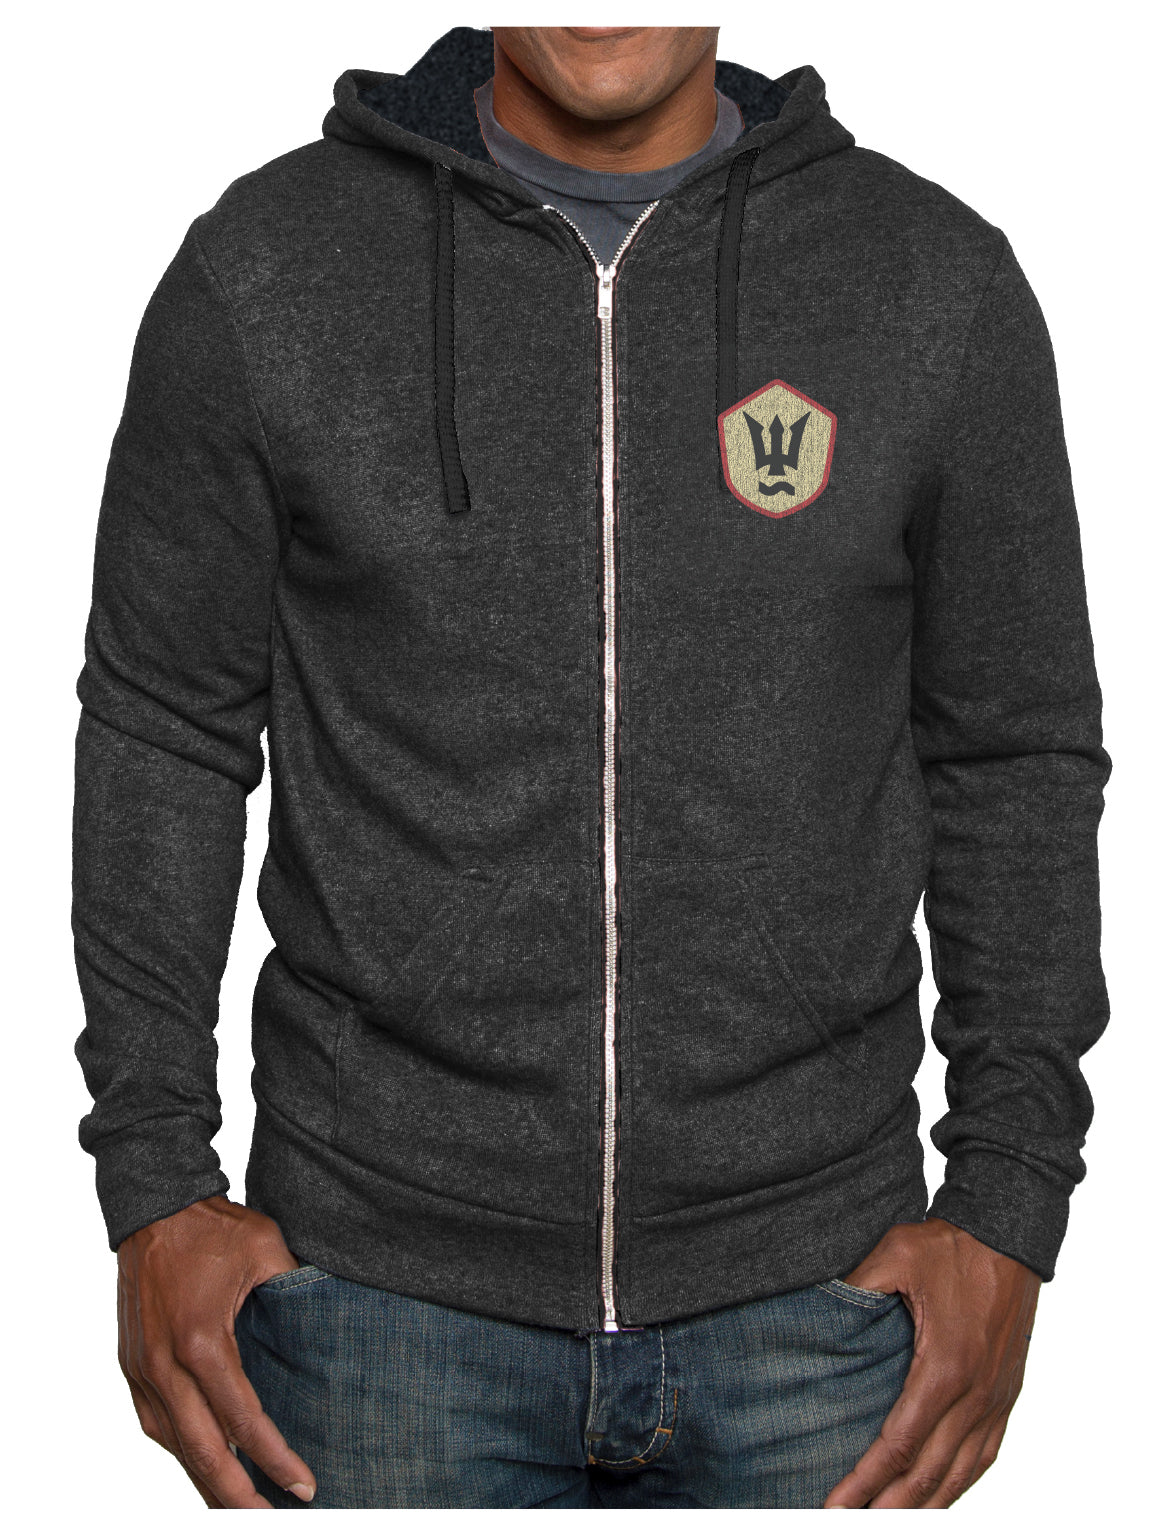 Navy Heather Unisex Zip Hoodie